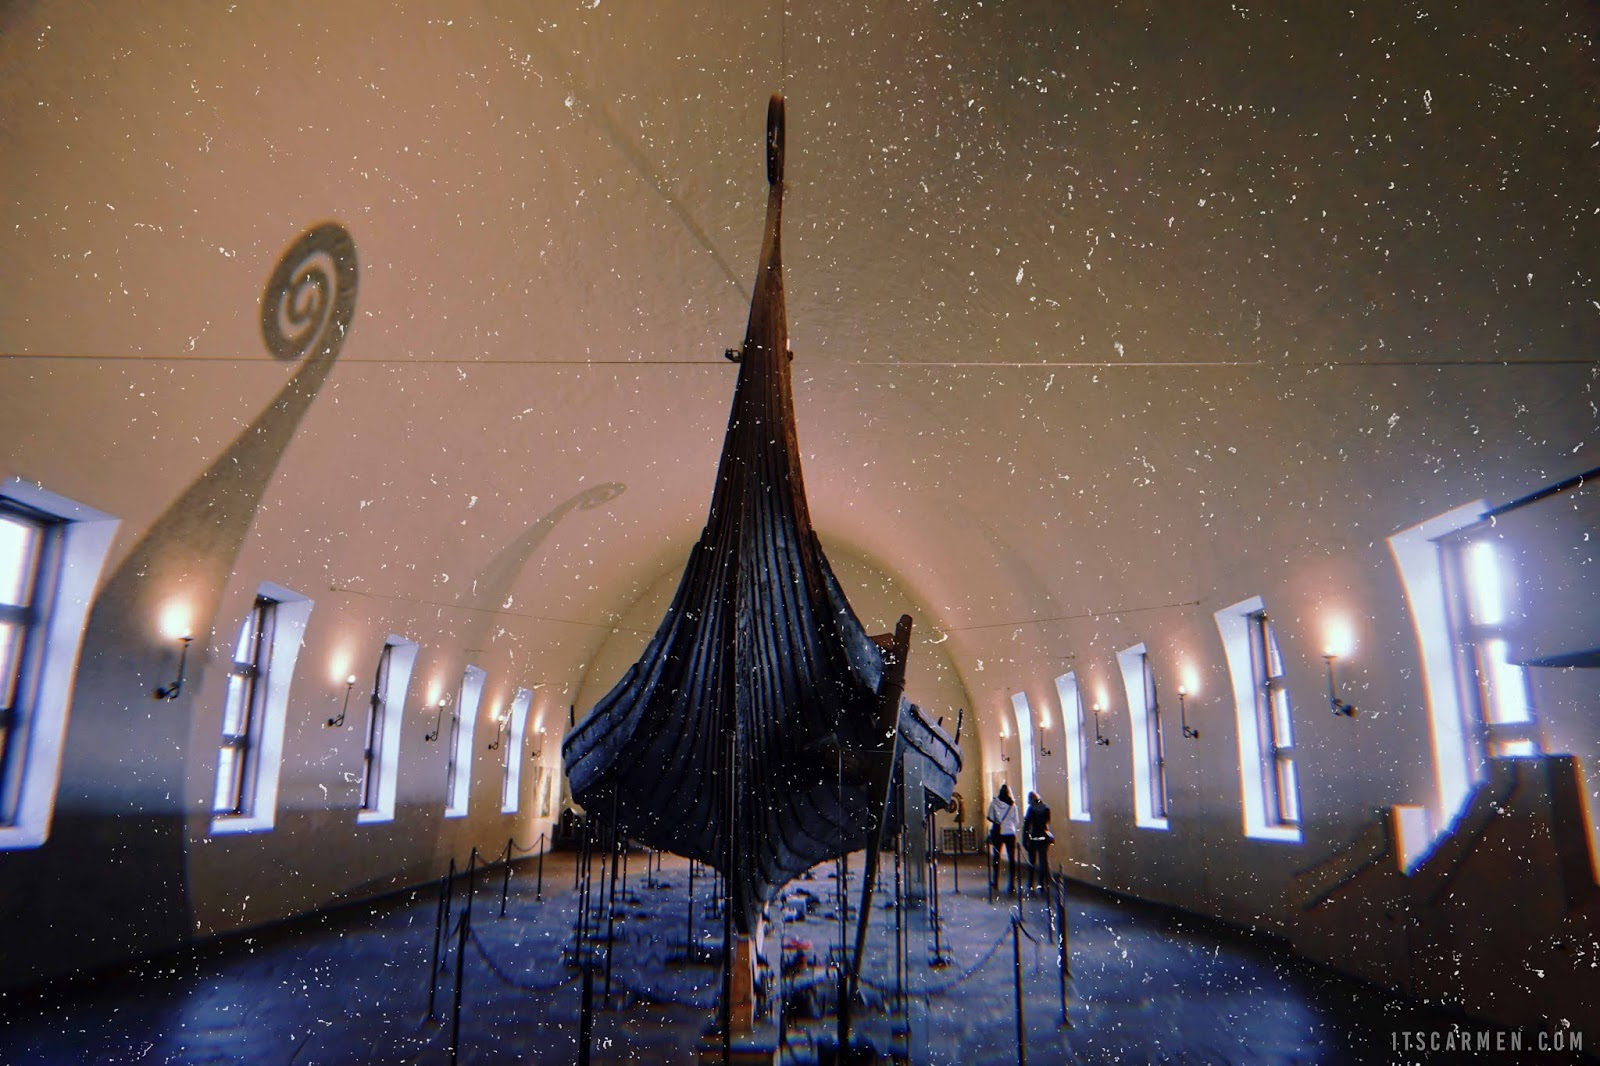 Gokstad & Oseberg Viking Ships at the Viking Ship Museum in Oslo